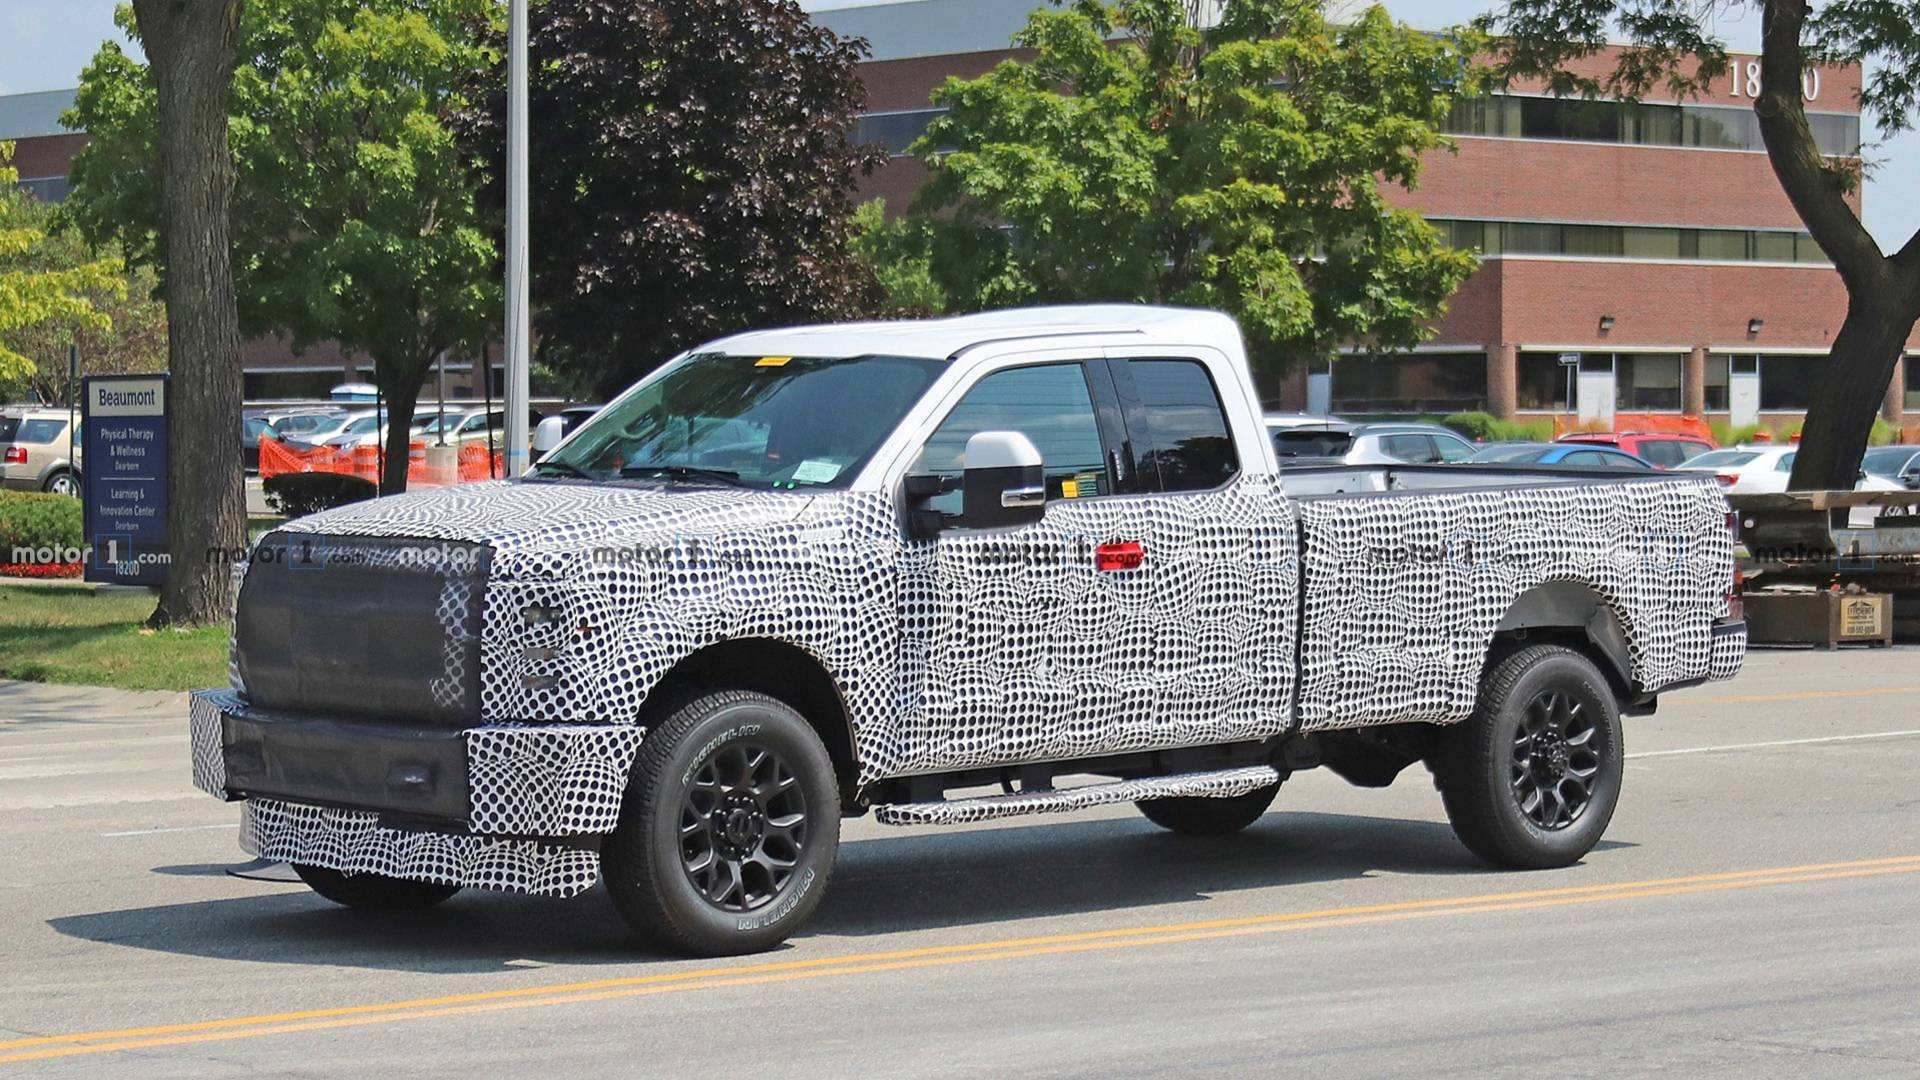 19 Concept of 2020 Ford F350 Super Duty Photos for 2020 Ford F350 Super Duty